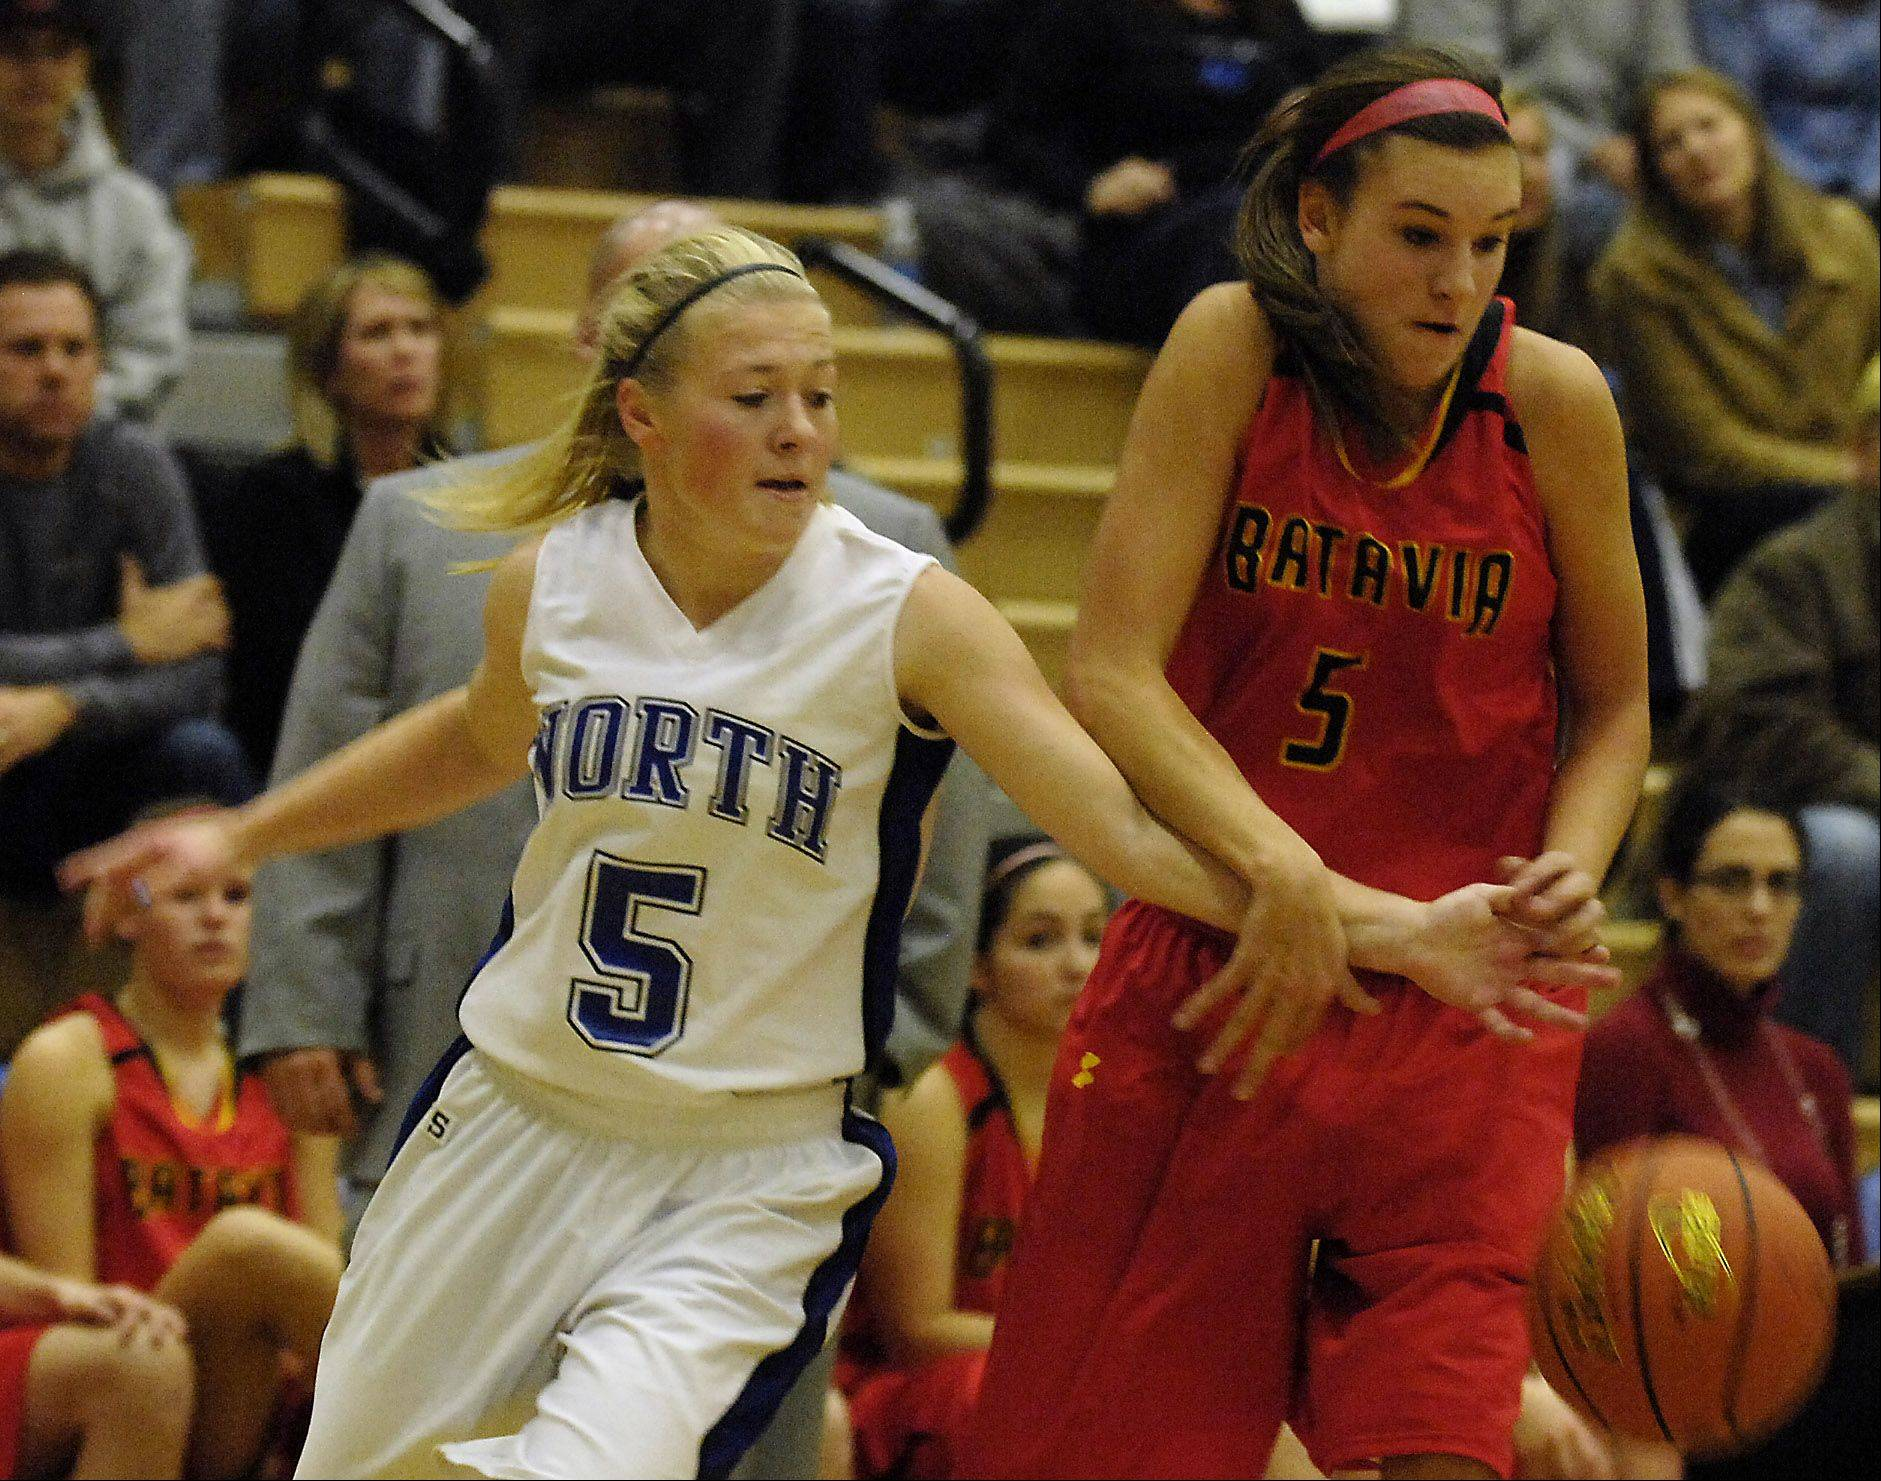 St. Charles North's Natalie Winkates tries to steal the ball from Batavia's Liza Fruendt.